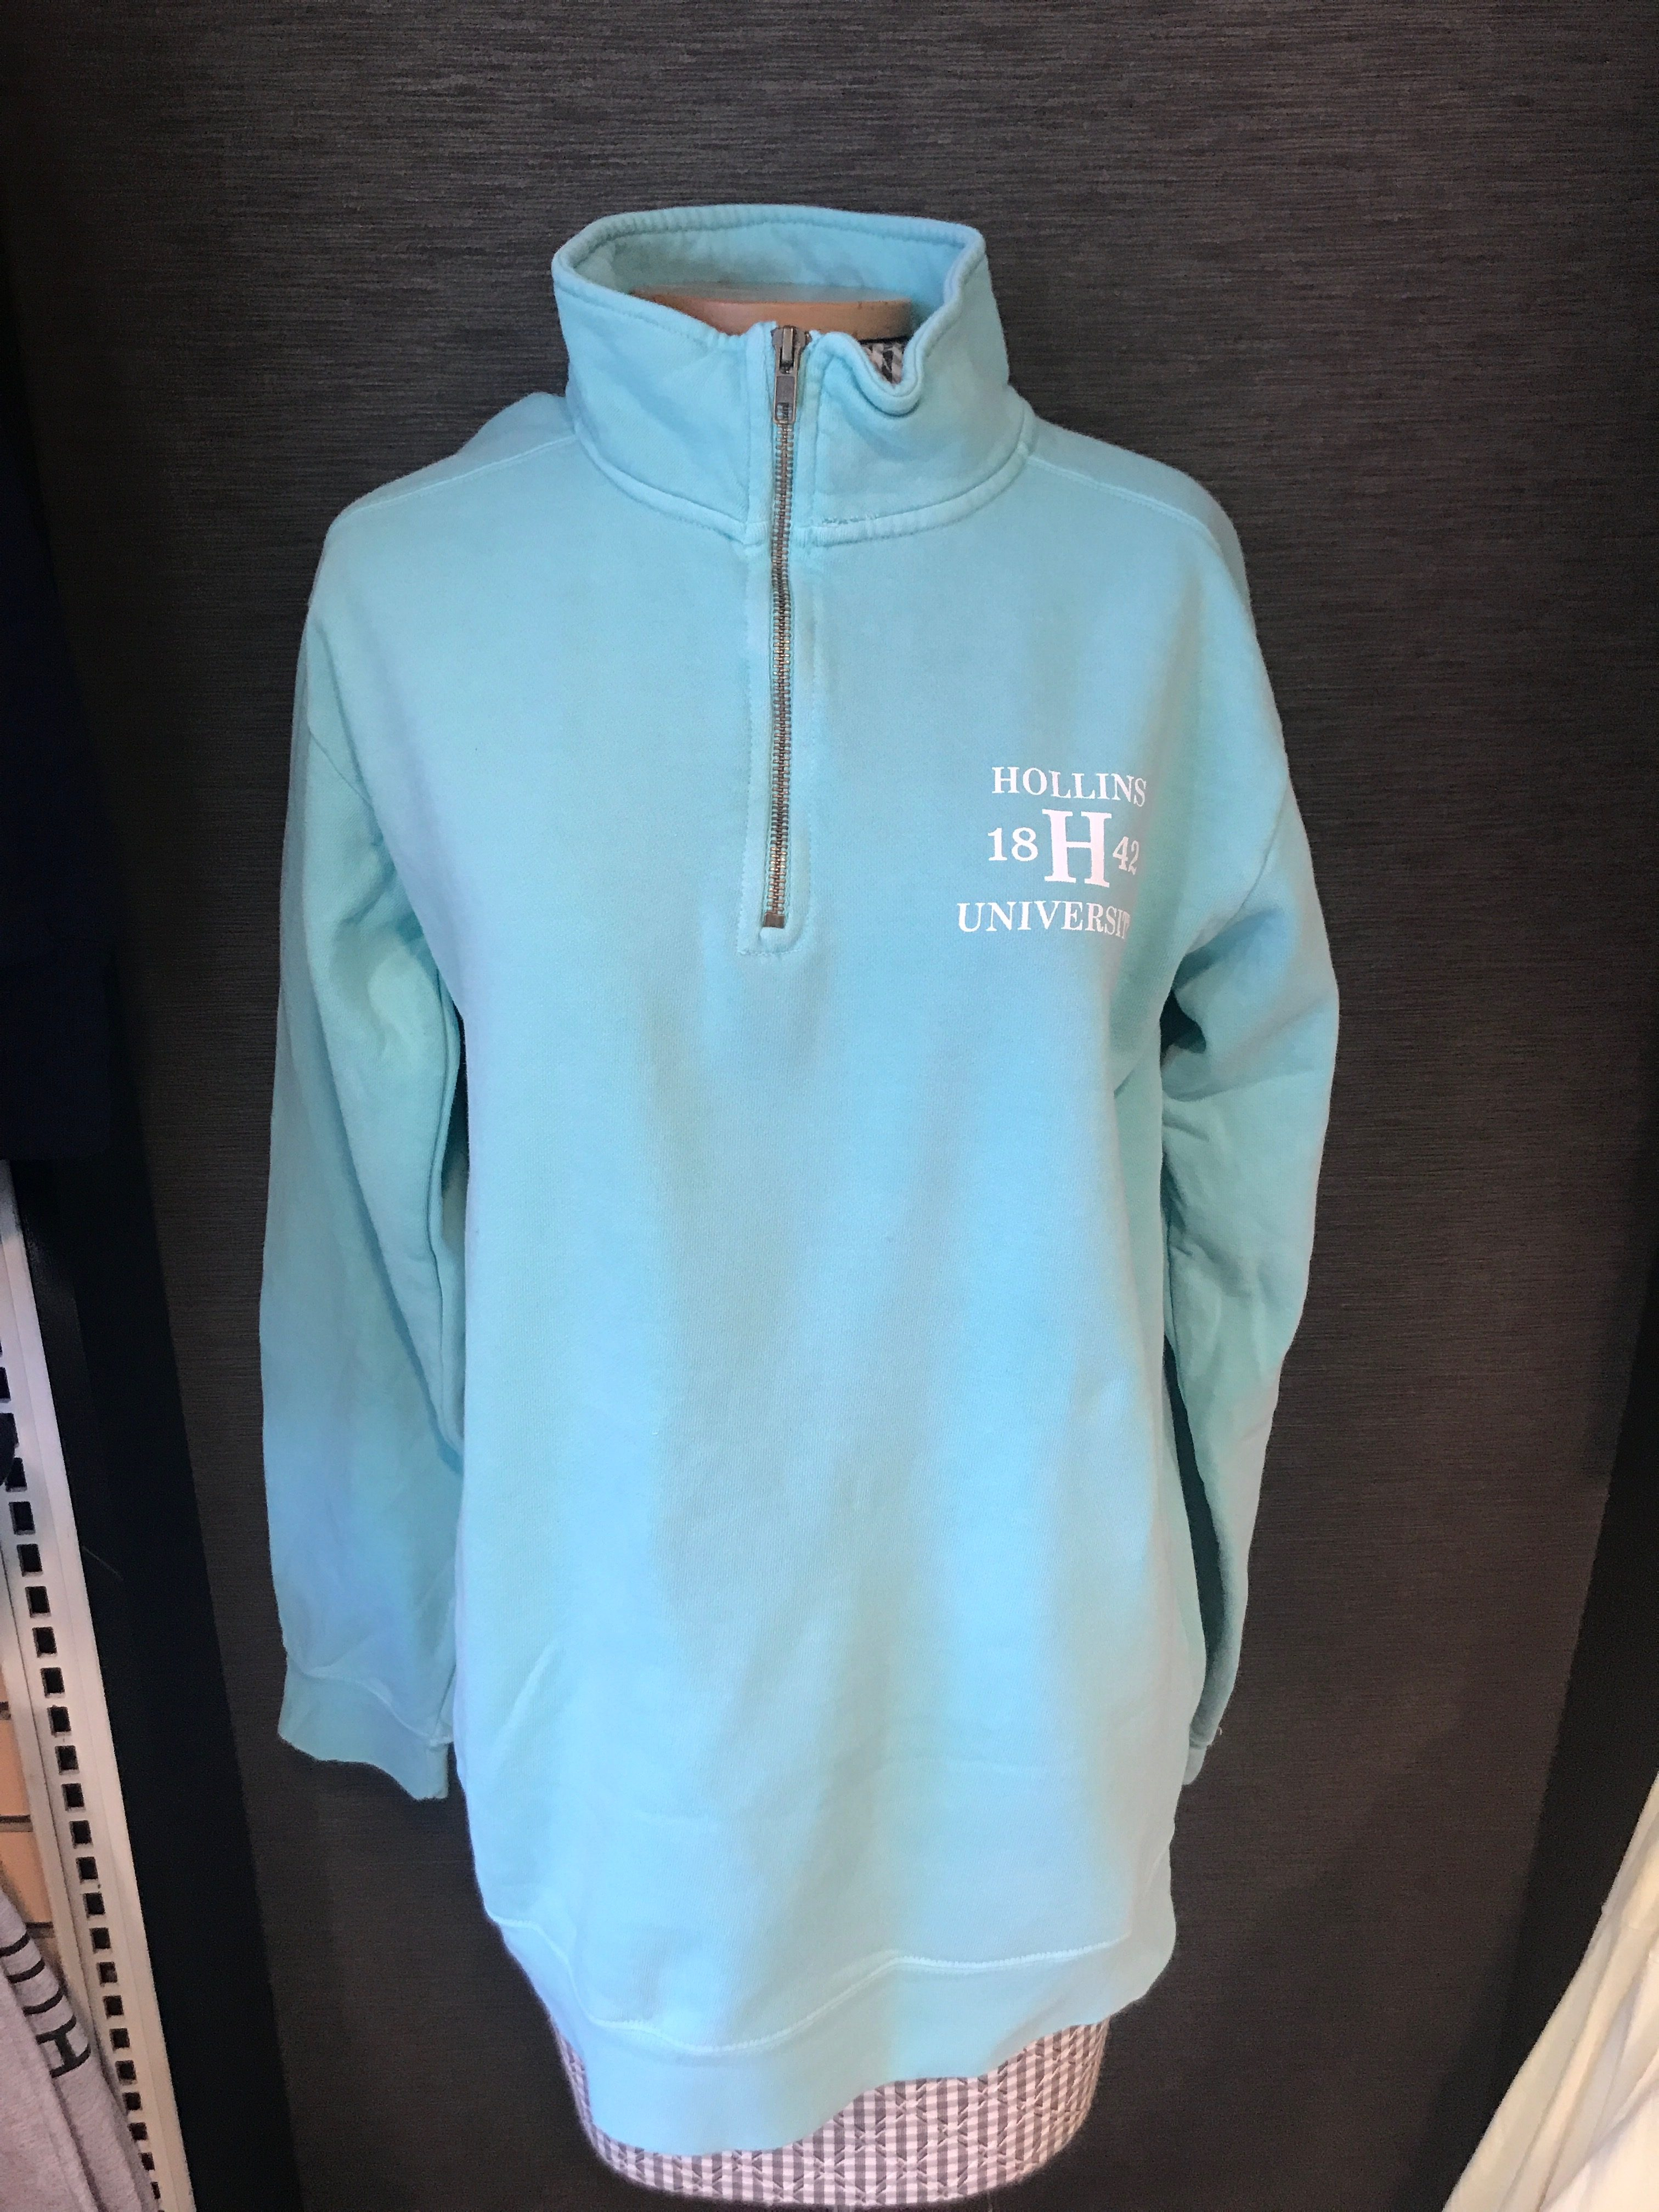 Quarter Zip Comfort Colors Sweatshirt